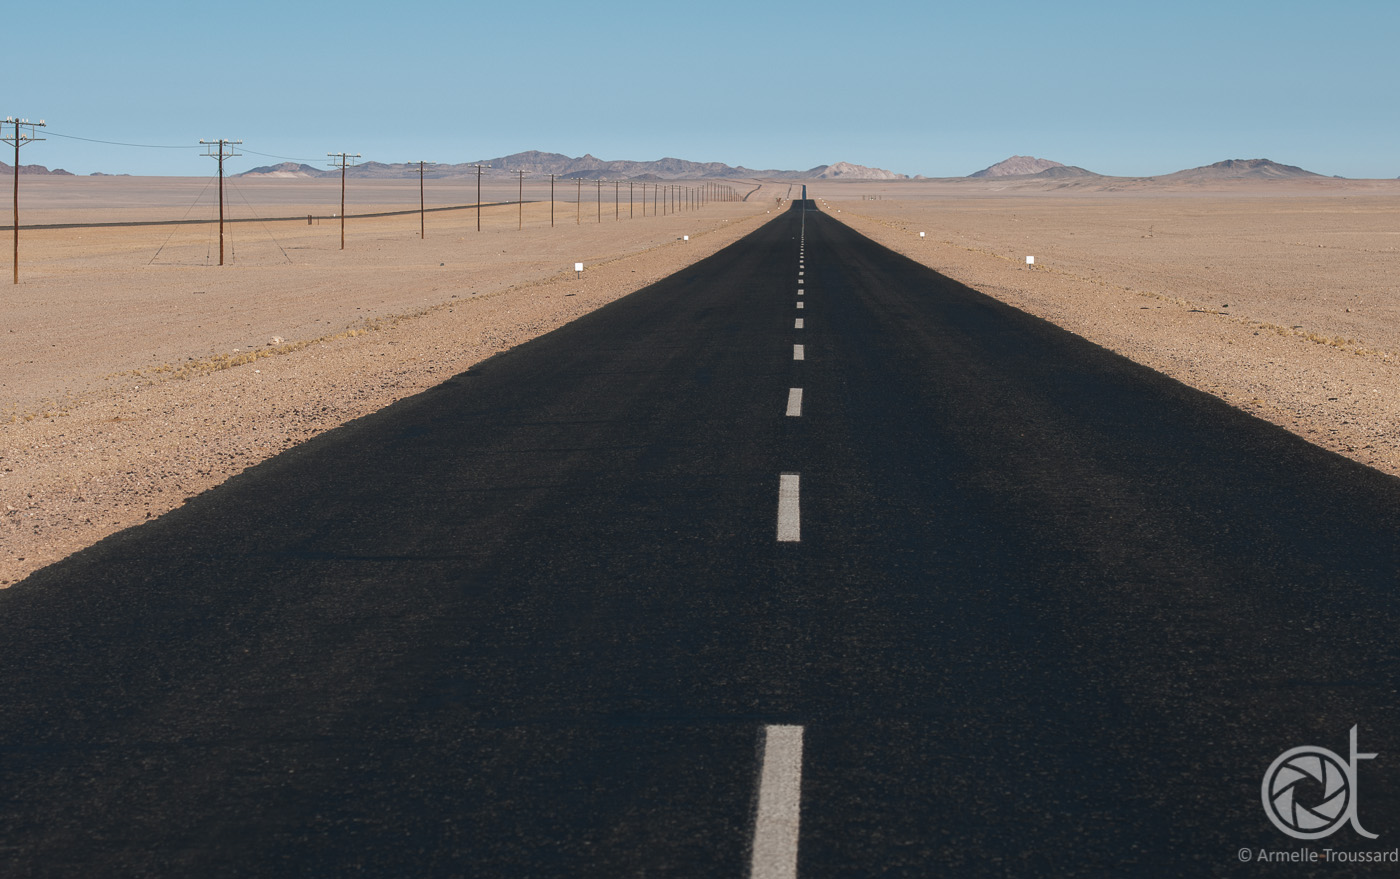 Down the road, Namibia.